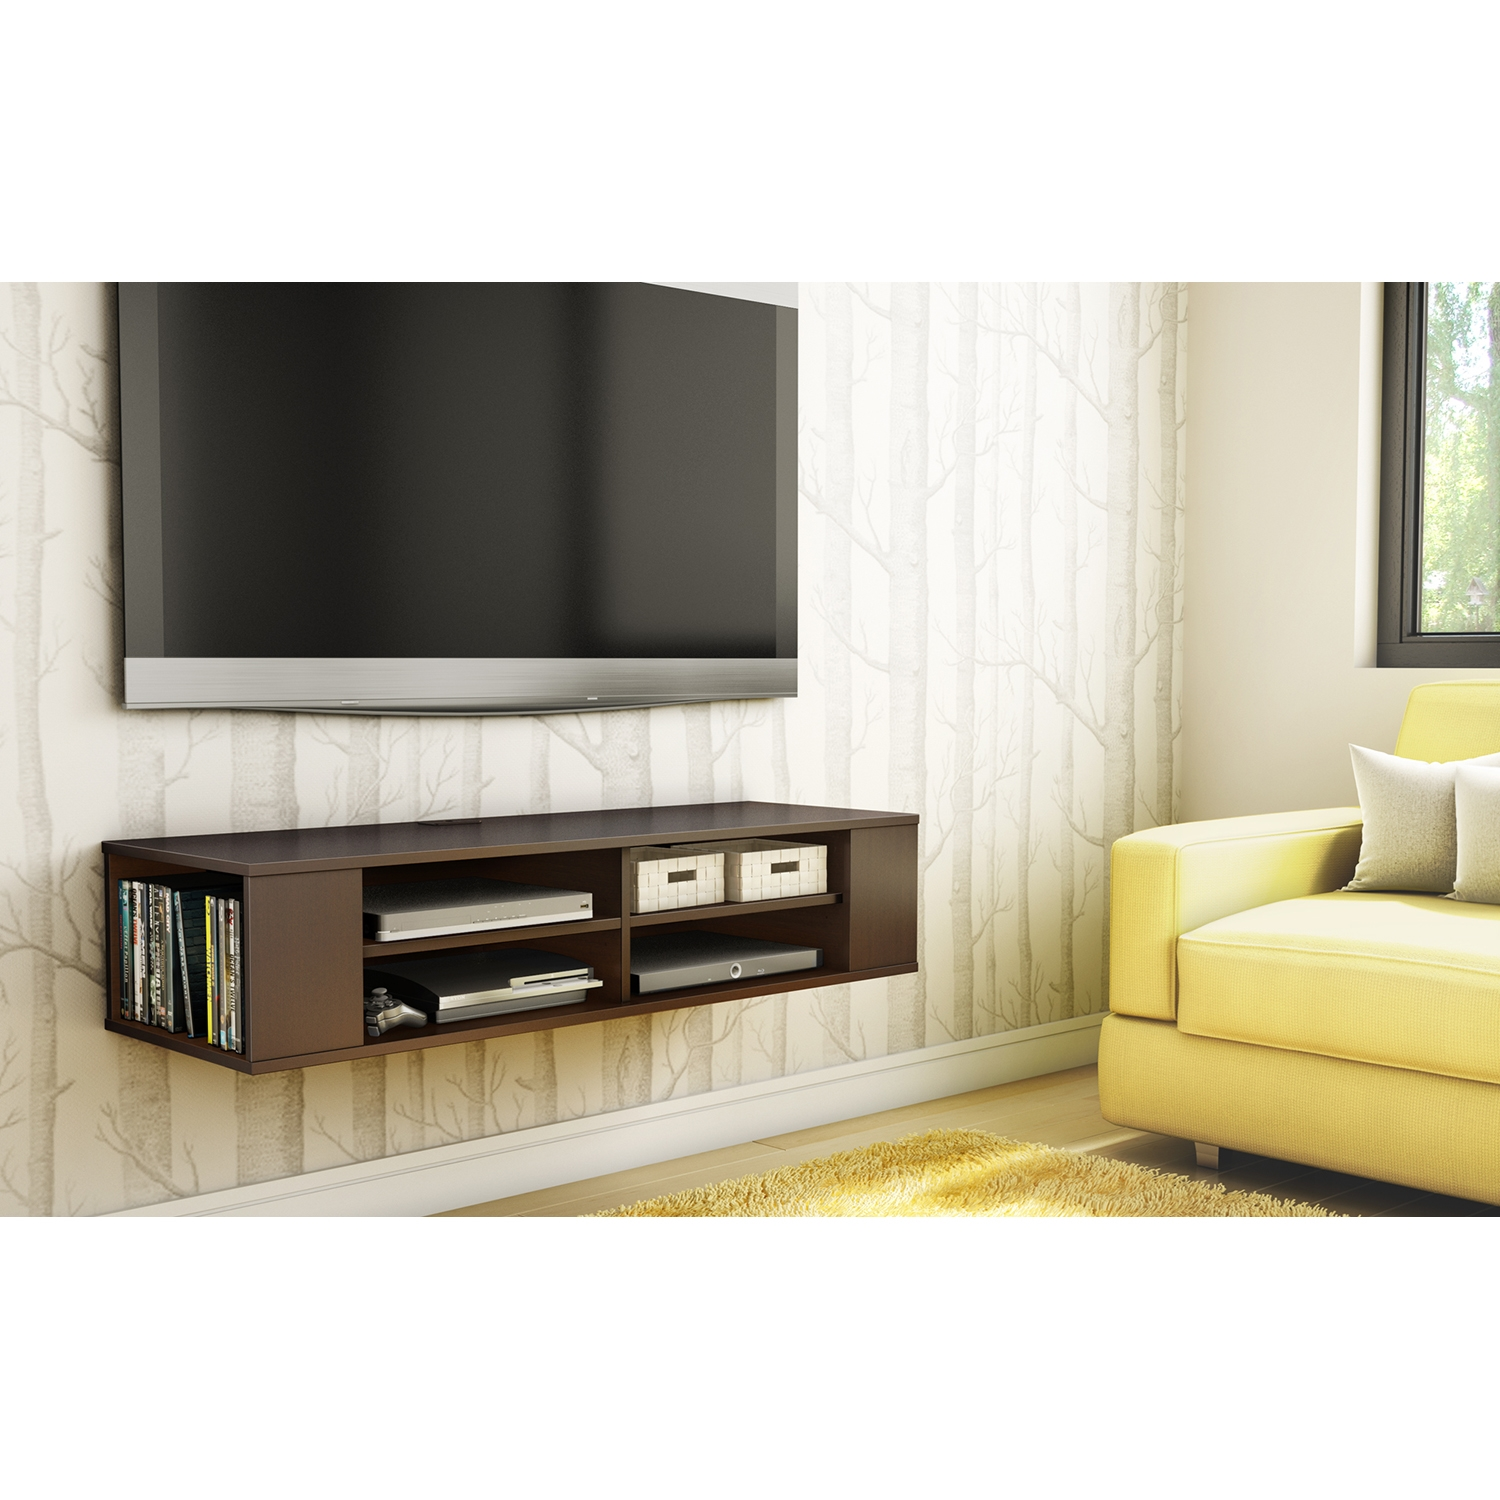 City Life Wall Mounted Media Console - Chocolate - SS-4419675